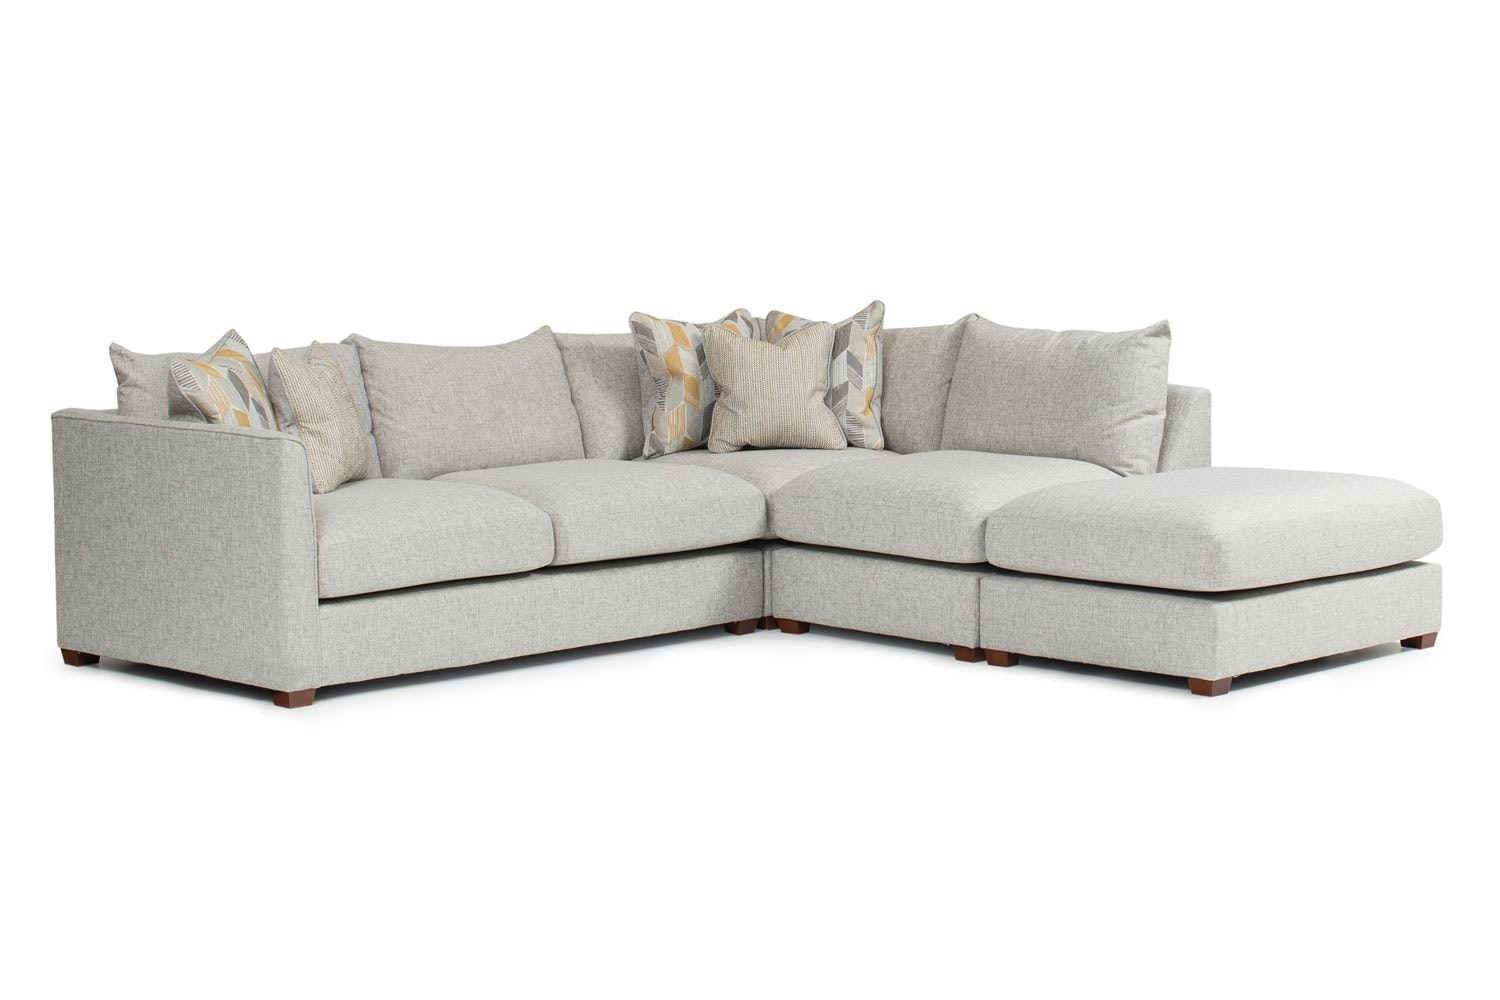 Charmant Faye Corner Sofa With Chaise